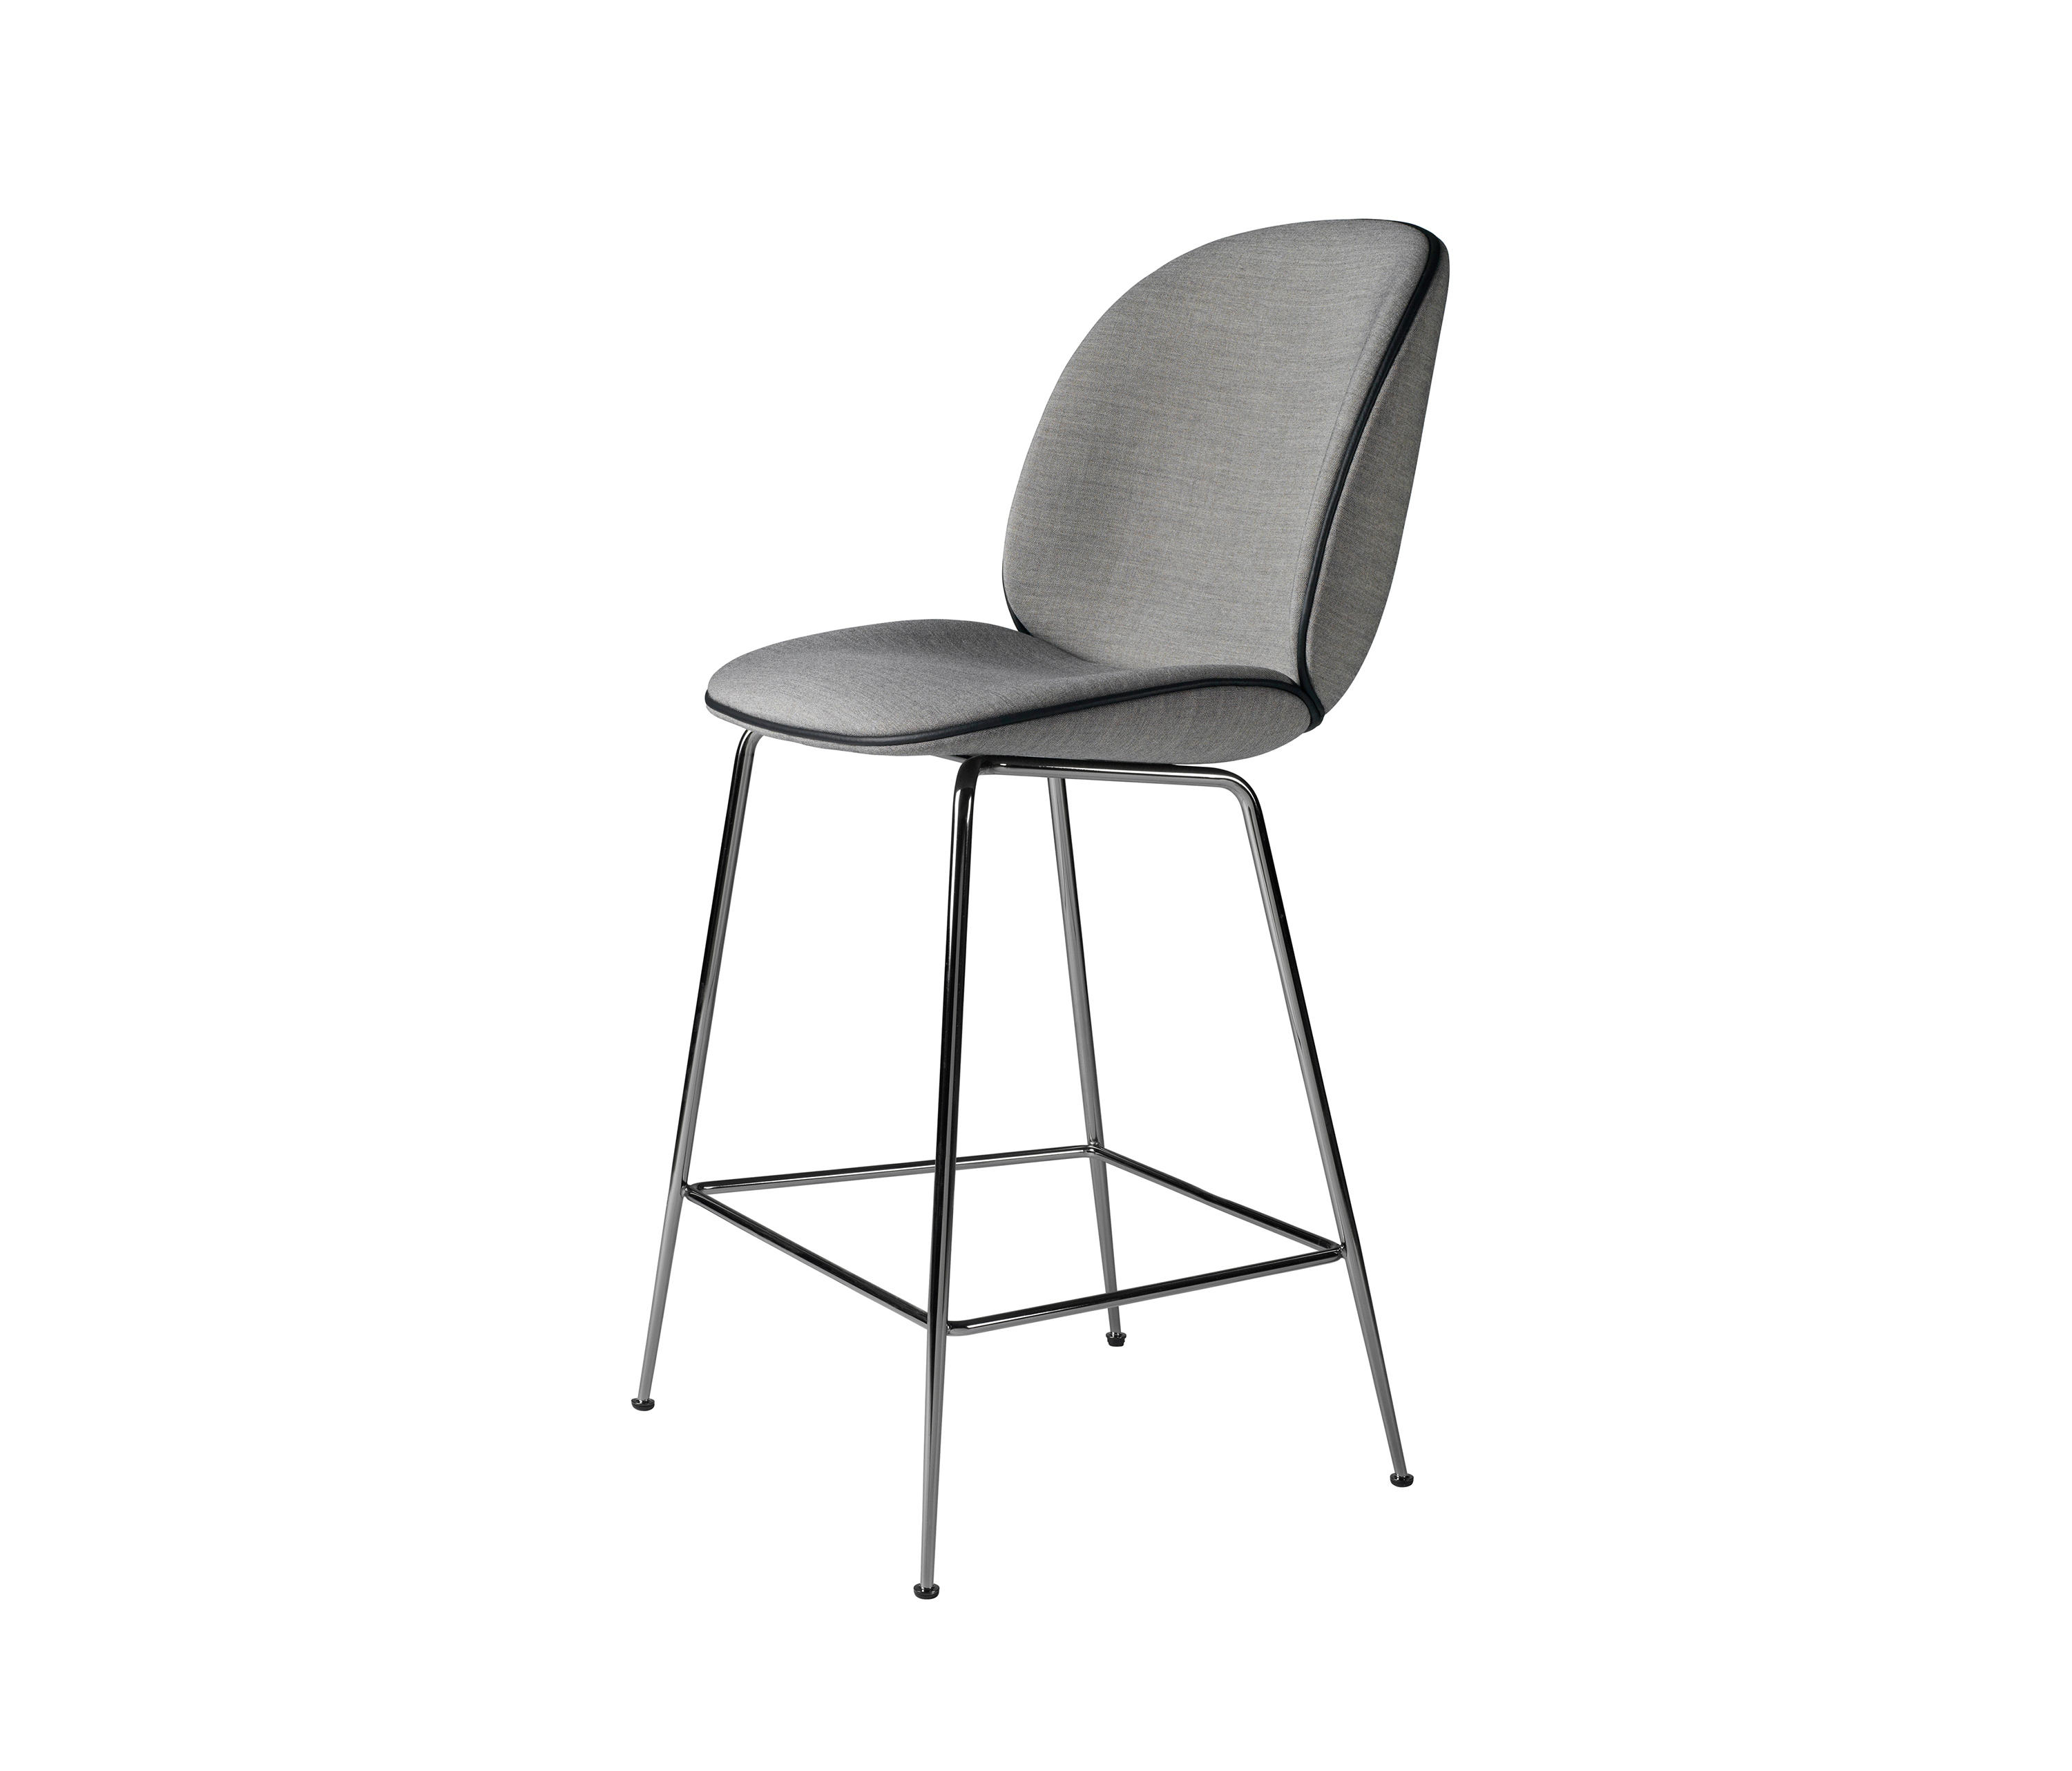 Beetle Bar Chair Bar Stools From Gubi Architonic